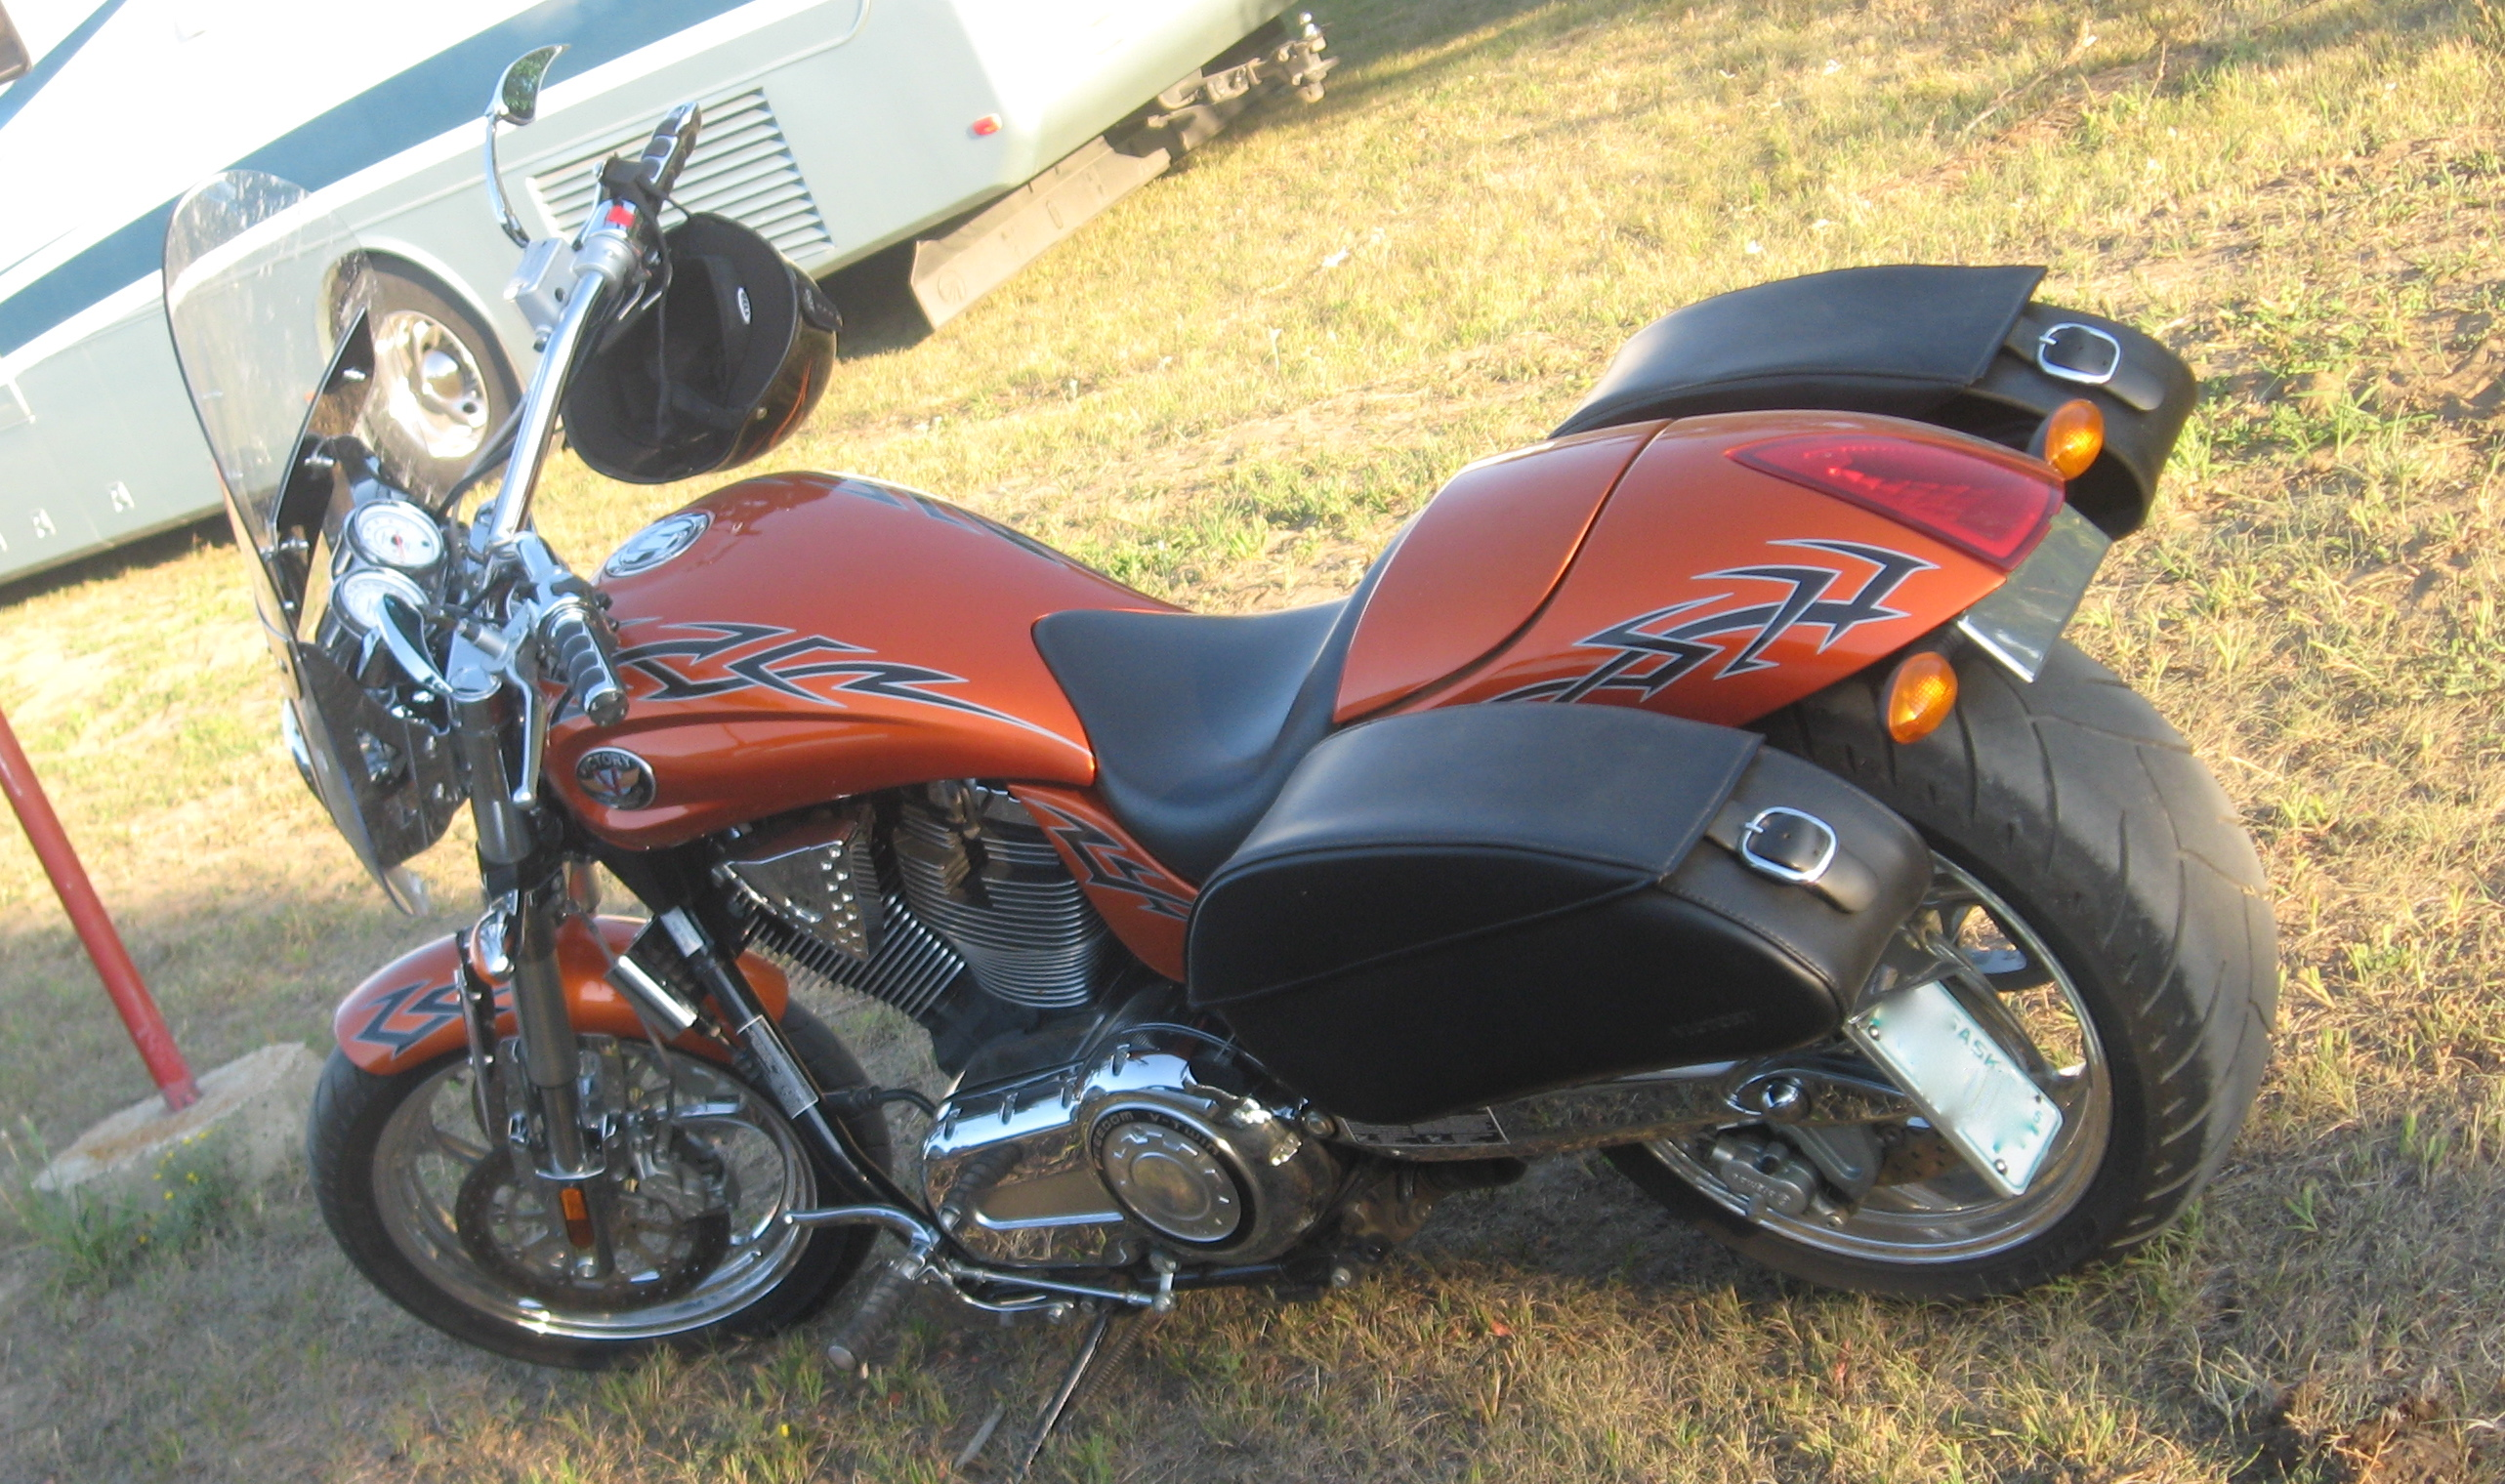 Victory Cruiser Deluxe 1500 2000 images #129420